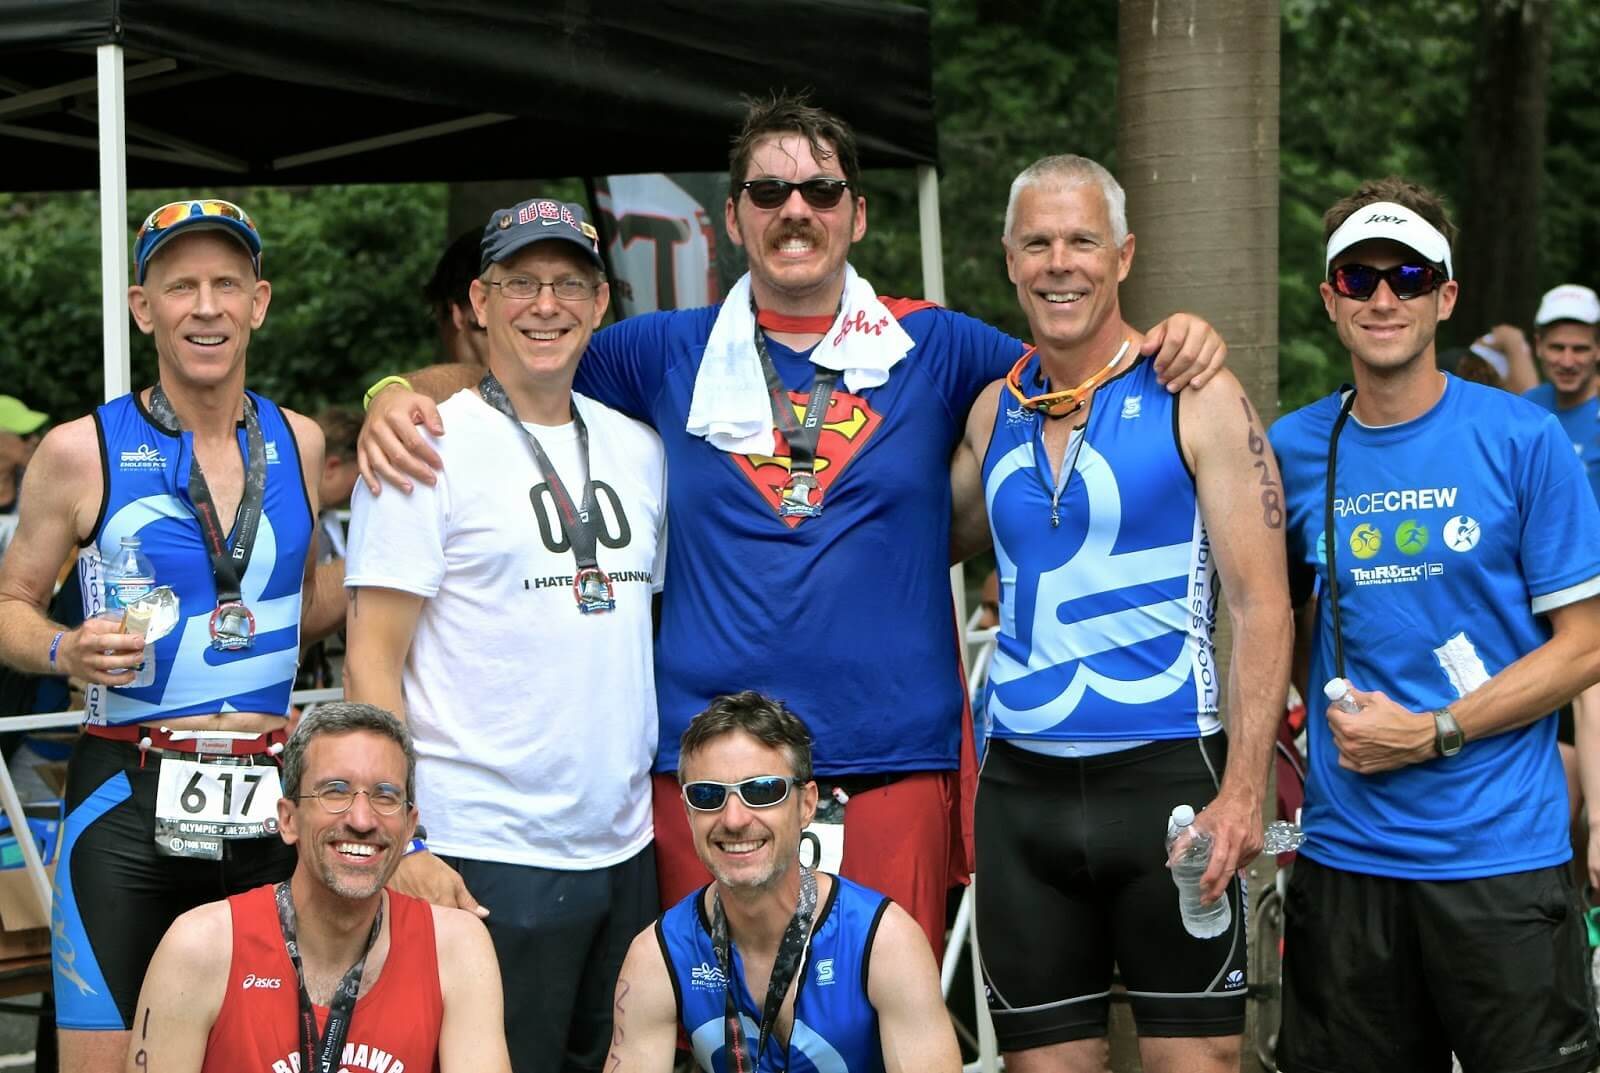 the men of Team Endless Pools at the TriRock Philly triathlon